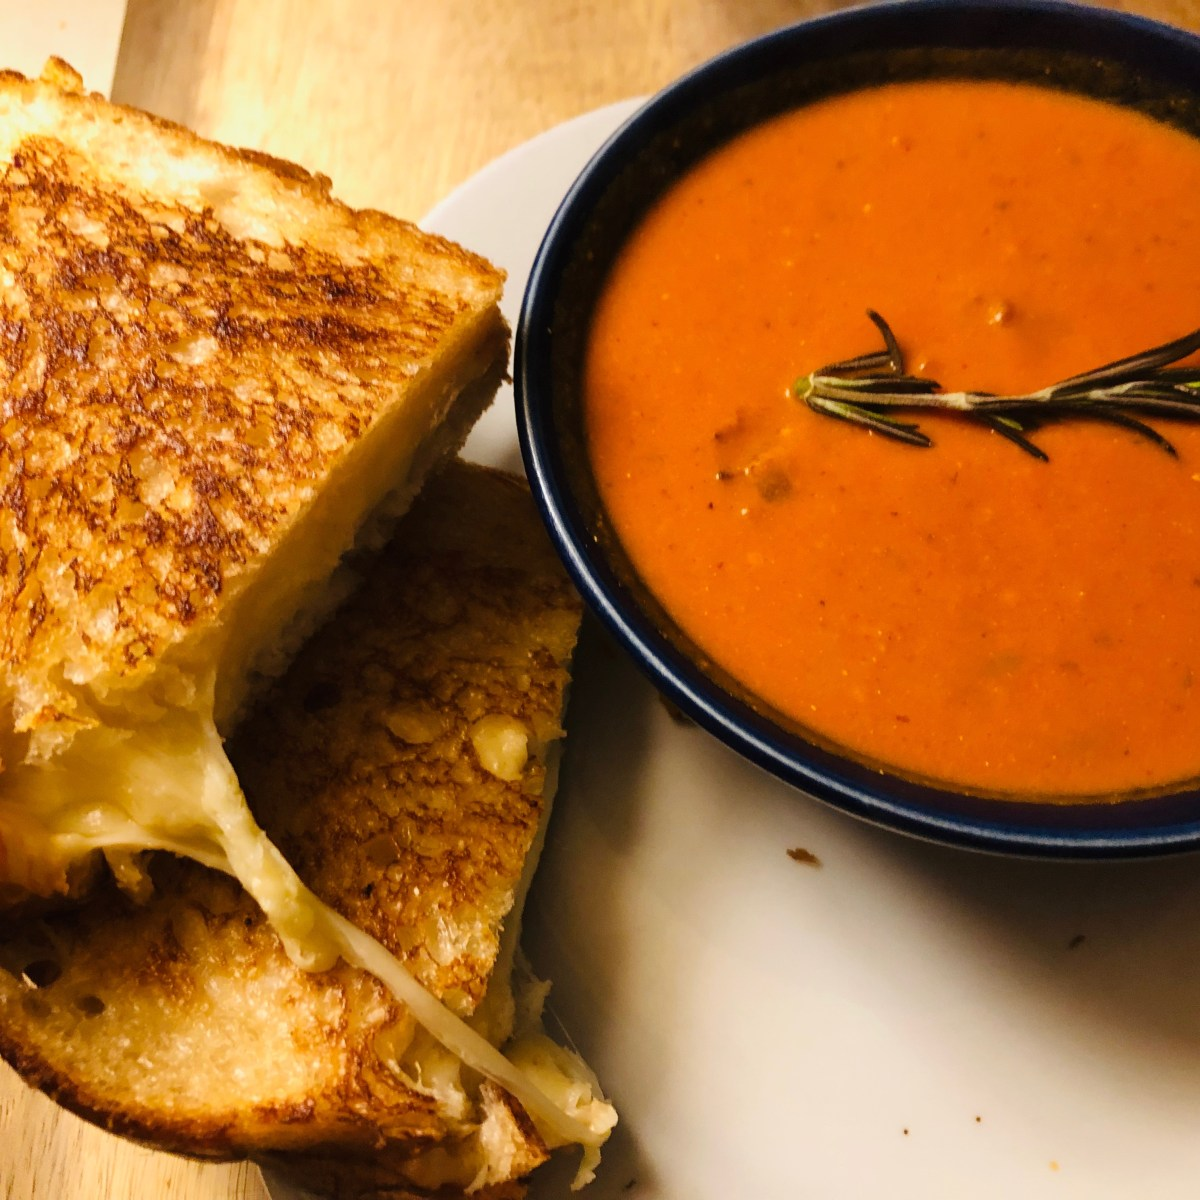 What's for supper? Vol.159: Bisquey business